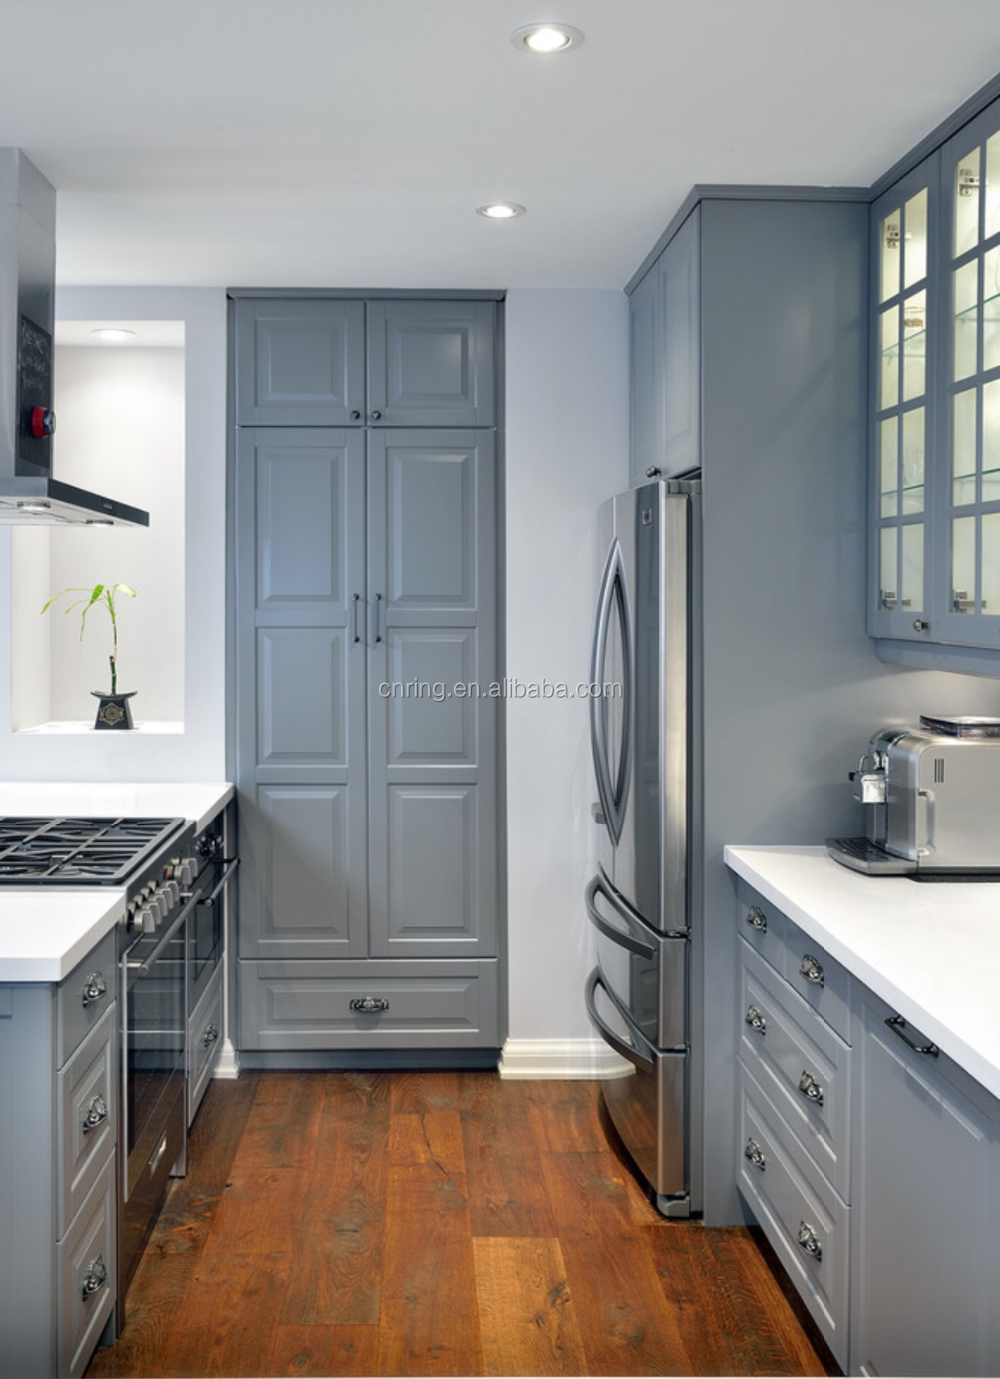 Modern Blue Lacquer Finish Kitchen Cabinets With French Glass Door